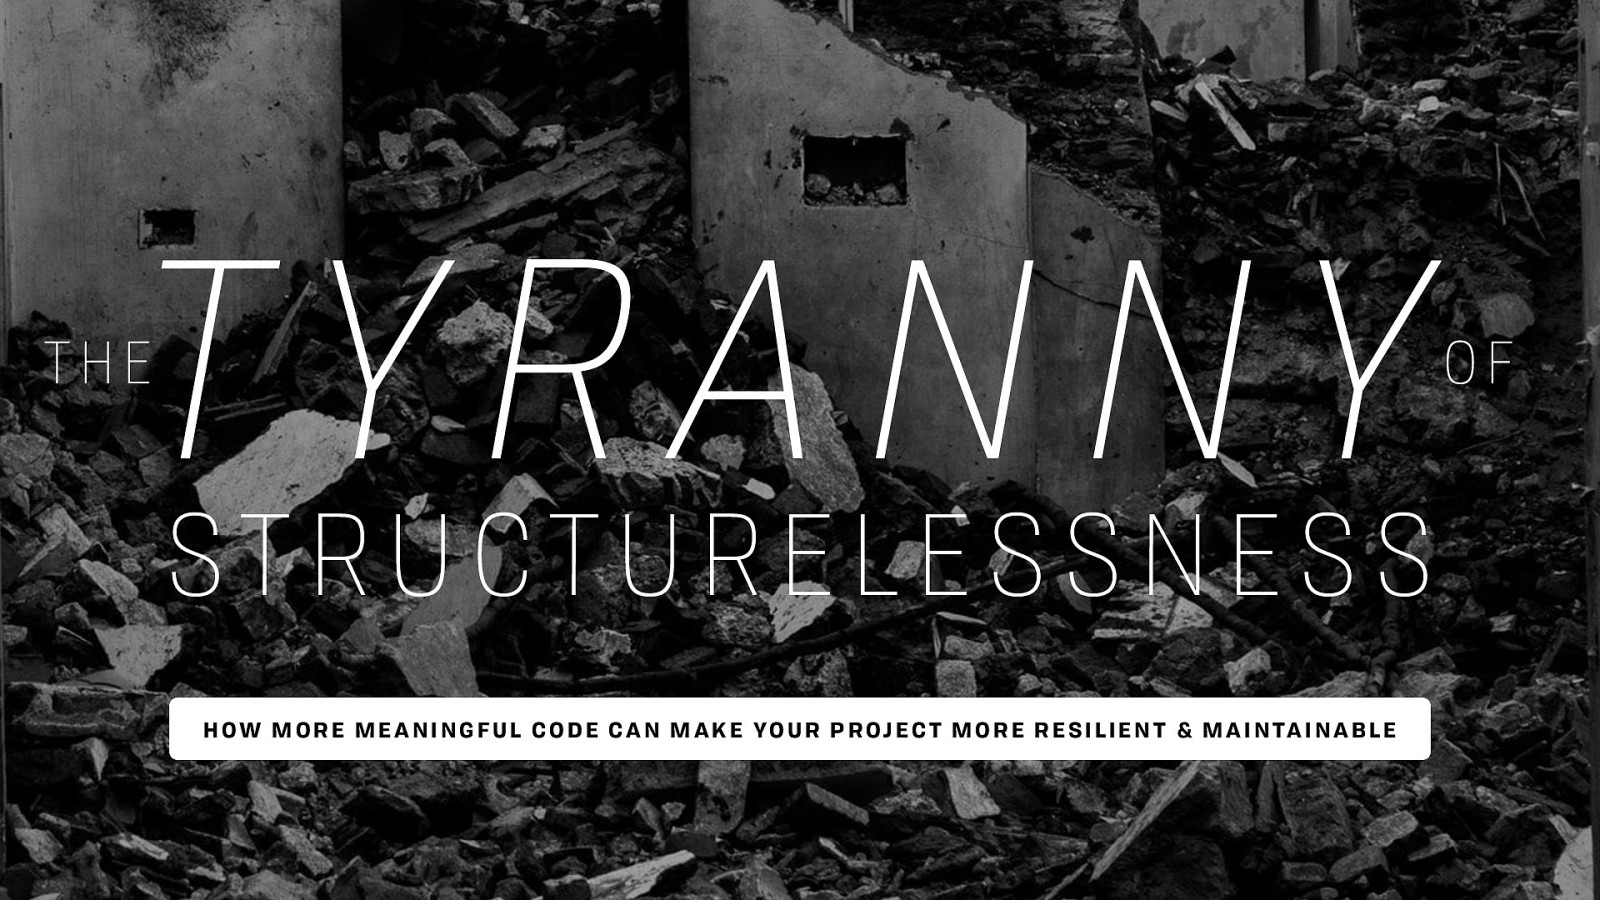 Opening Keynote: The Tyrrany of Structurelessness